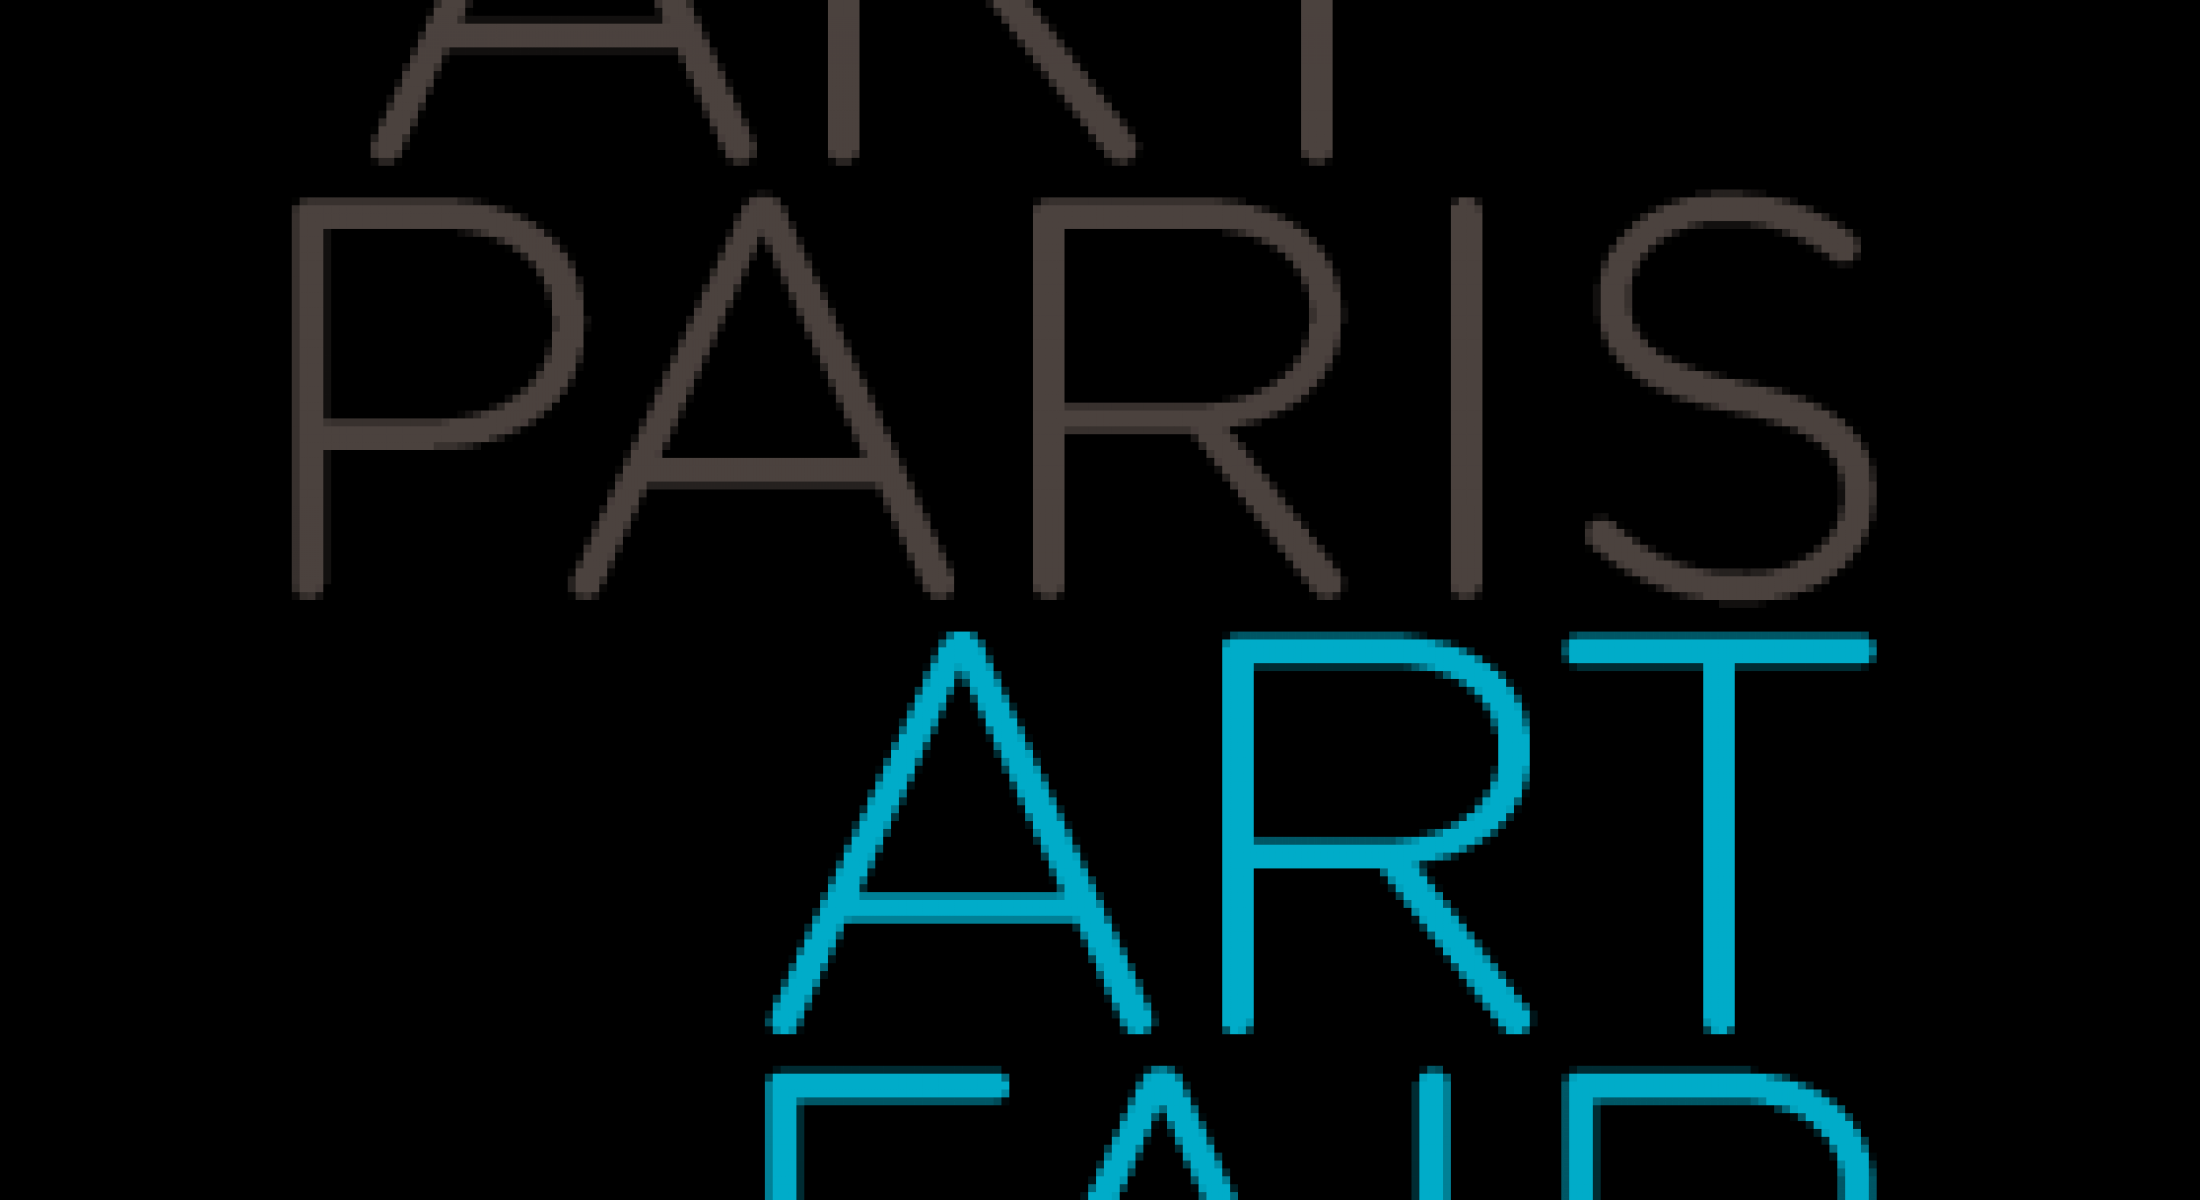 Exposition de la maison Daum de l'artiste Kongo - Art Paris Art Fair 2016